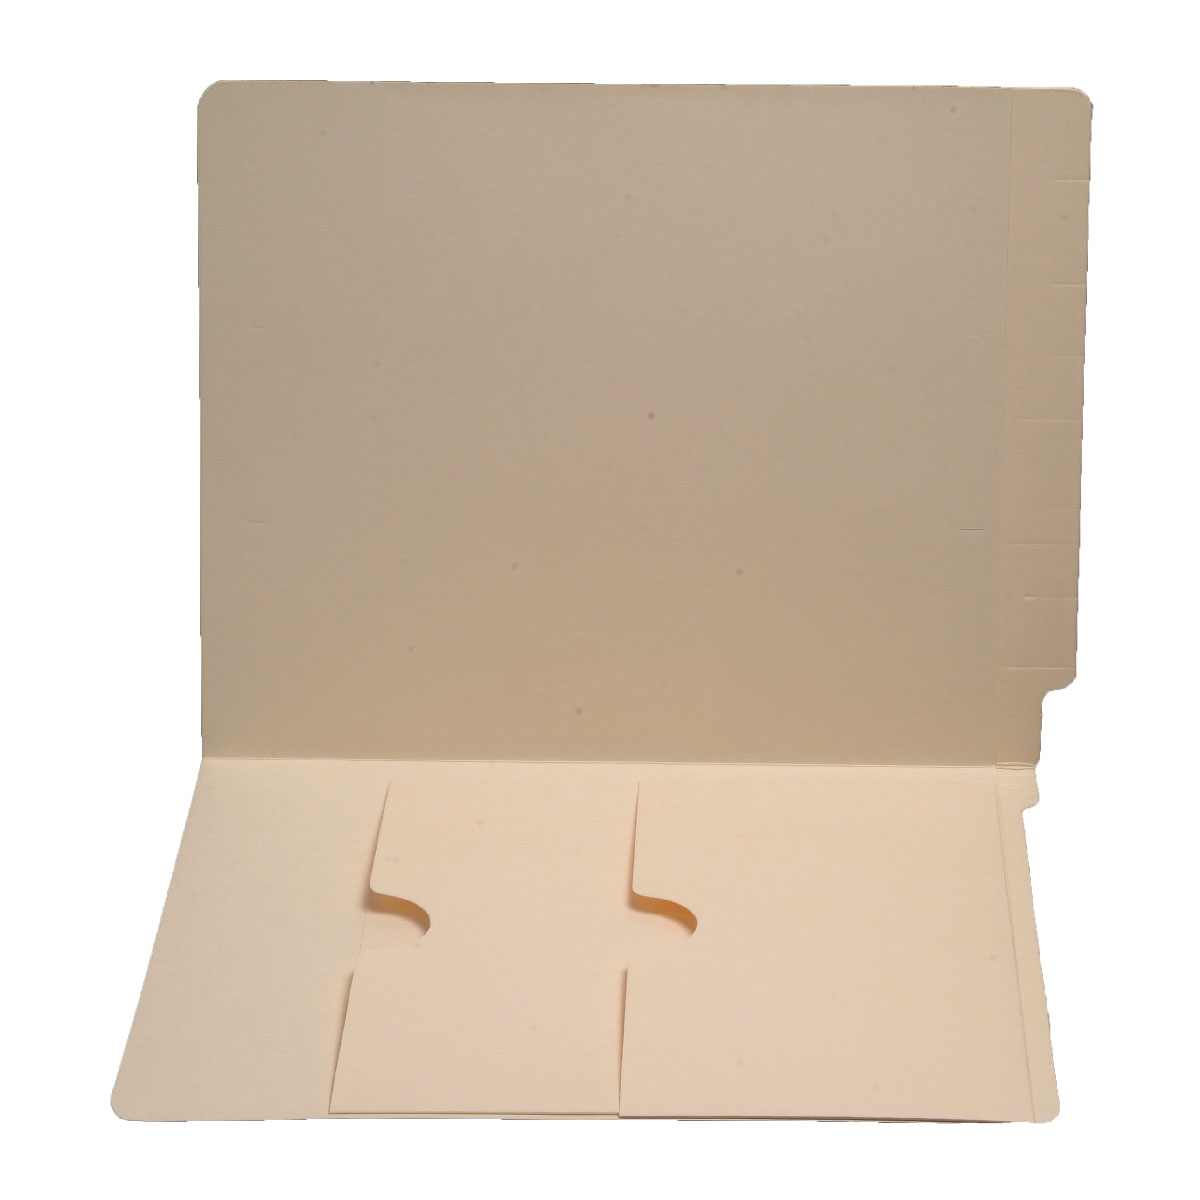 S-9050 - 11 pt Manila Folders, Full Cut End Tab, Letter Size, Double Pockets Inside Front (Box of 50)